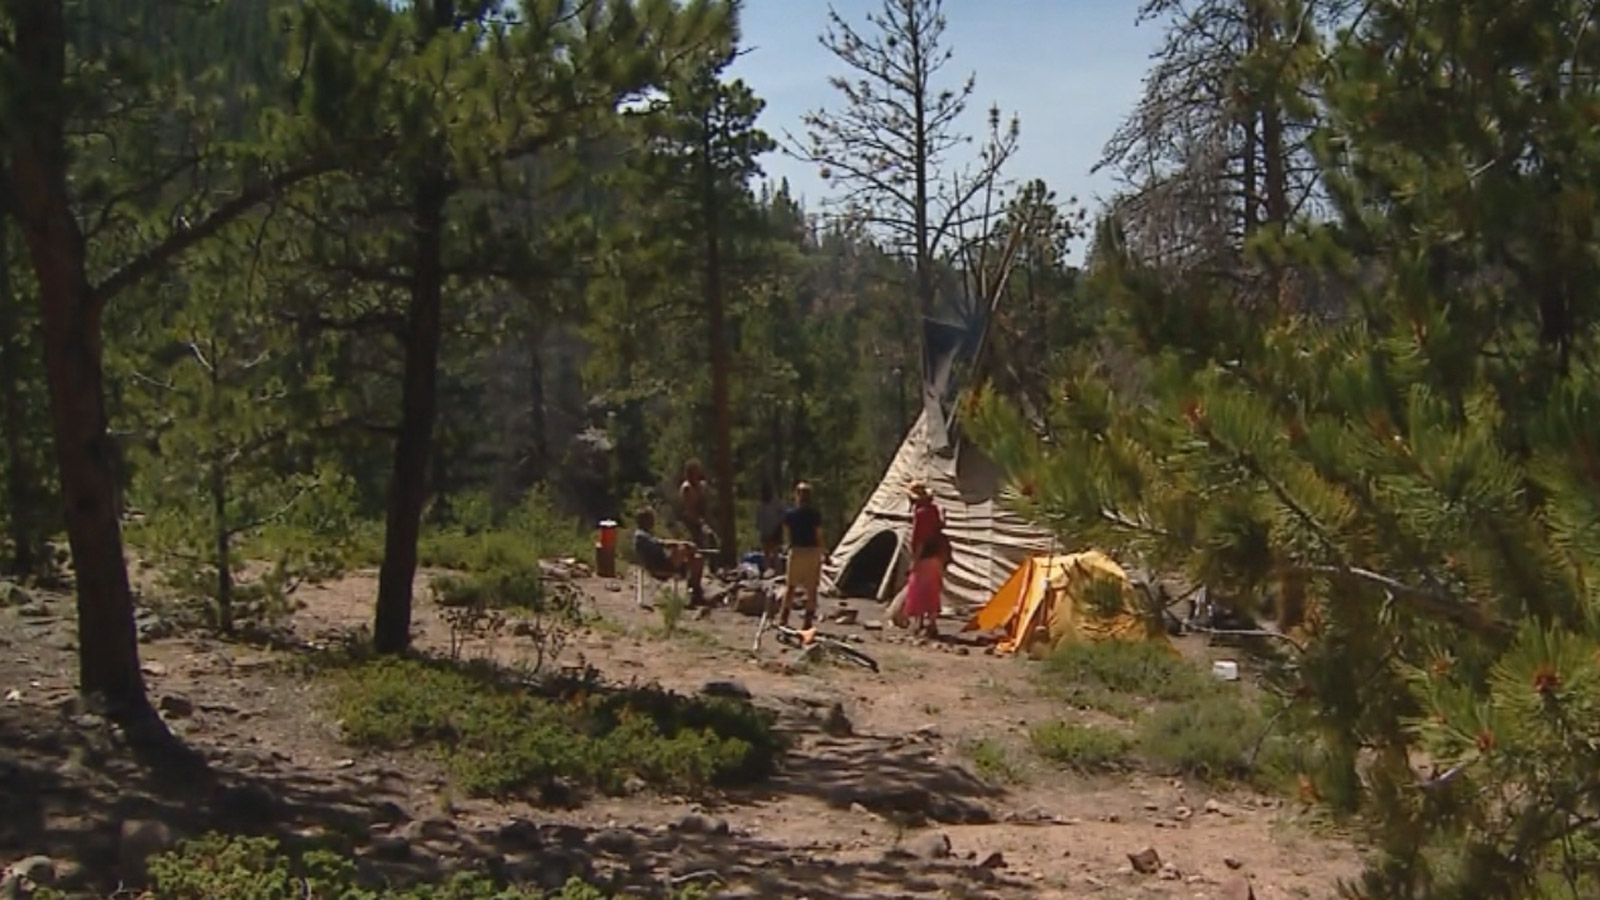 The Rainbow Family camp near Red Feather Lakes (credit: CBS)